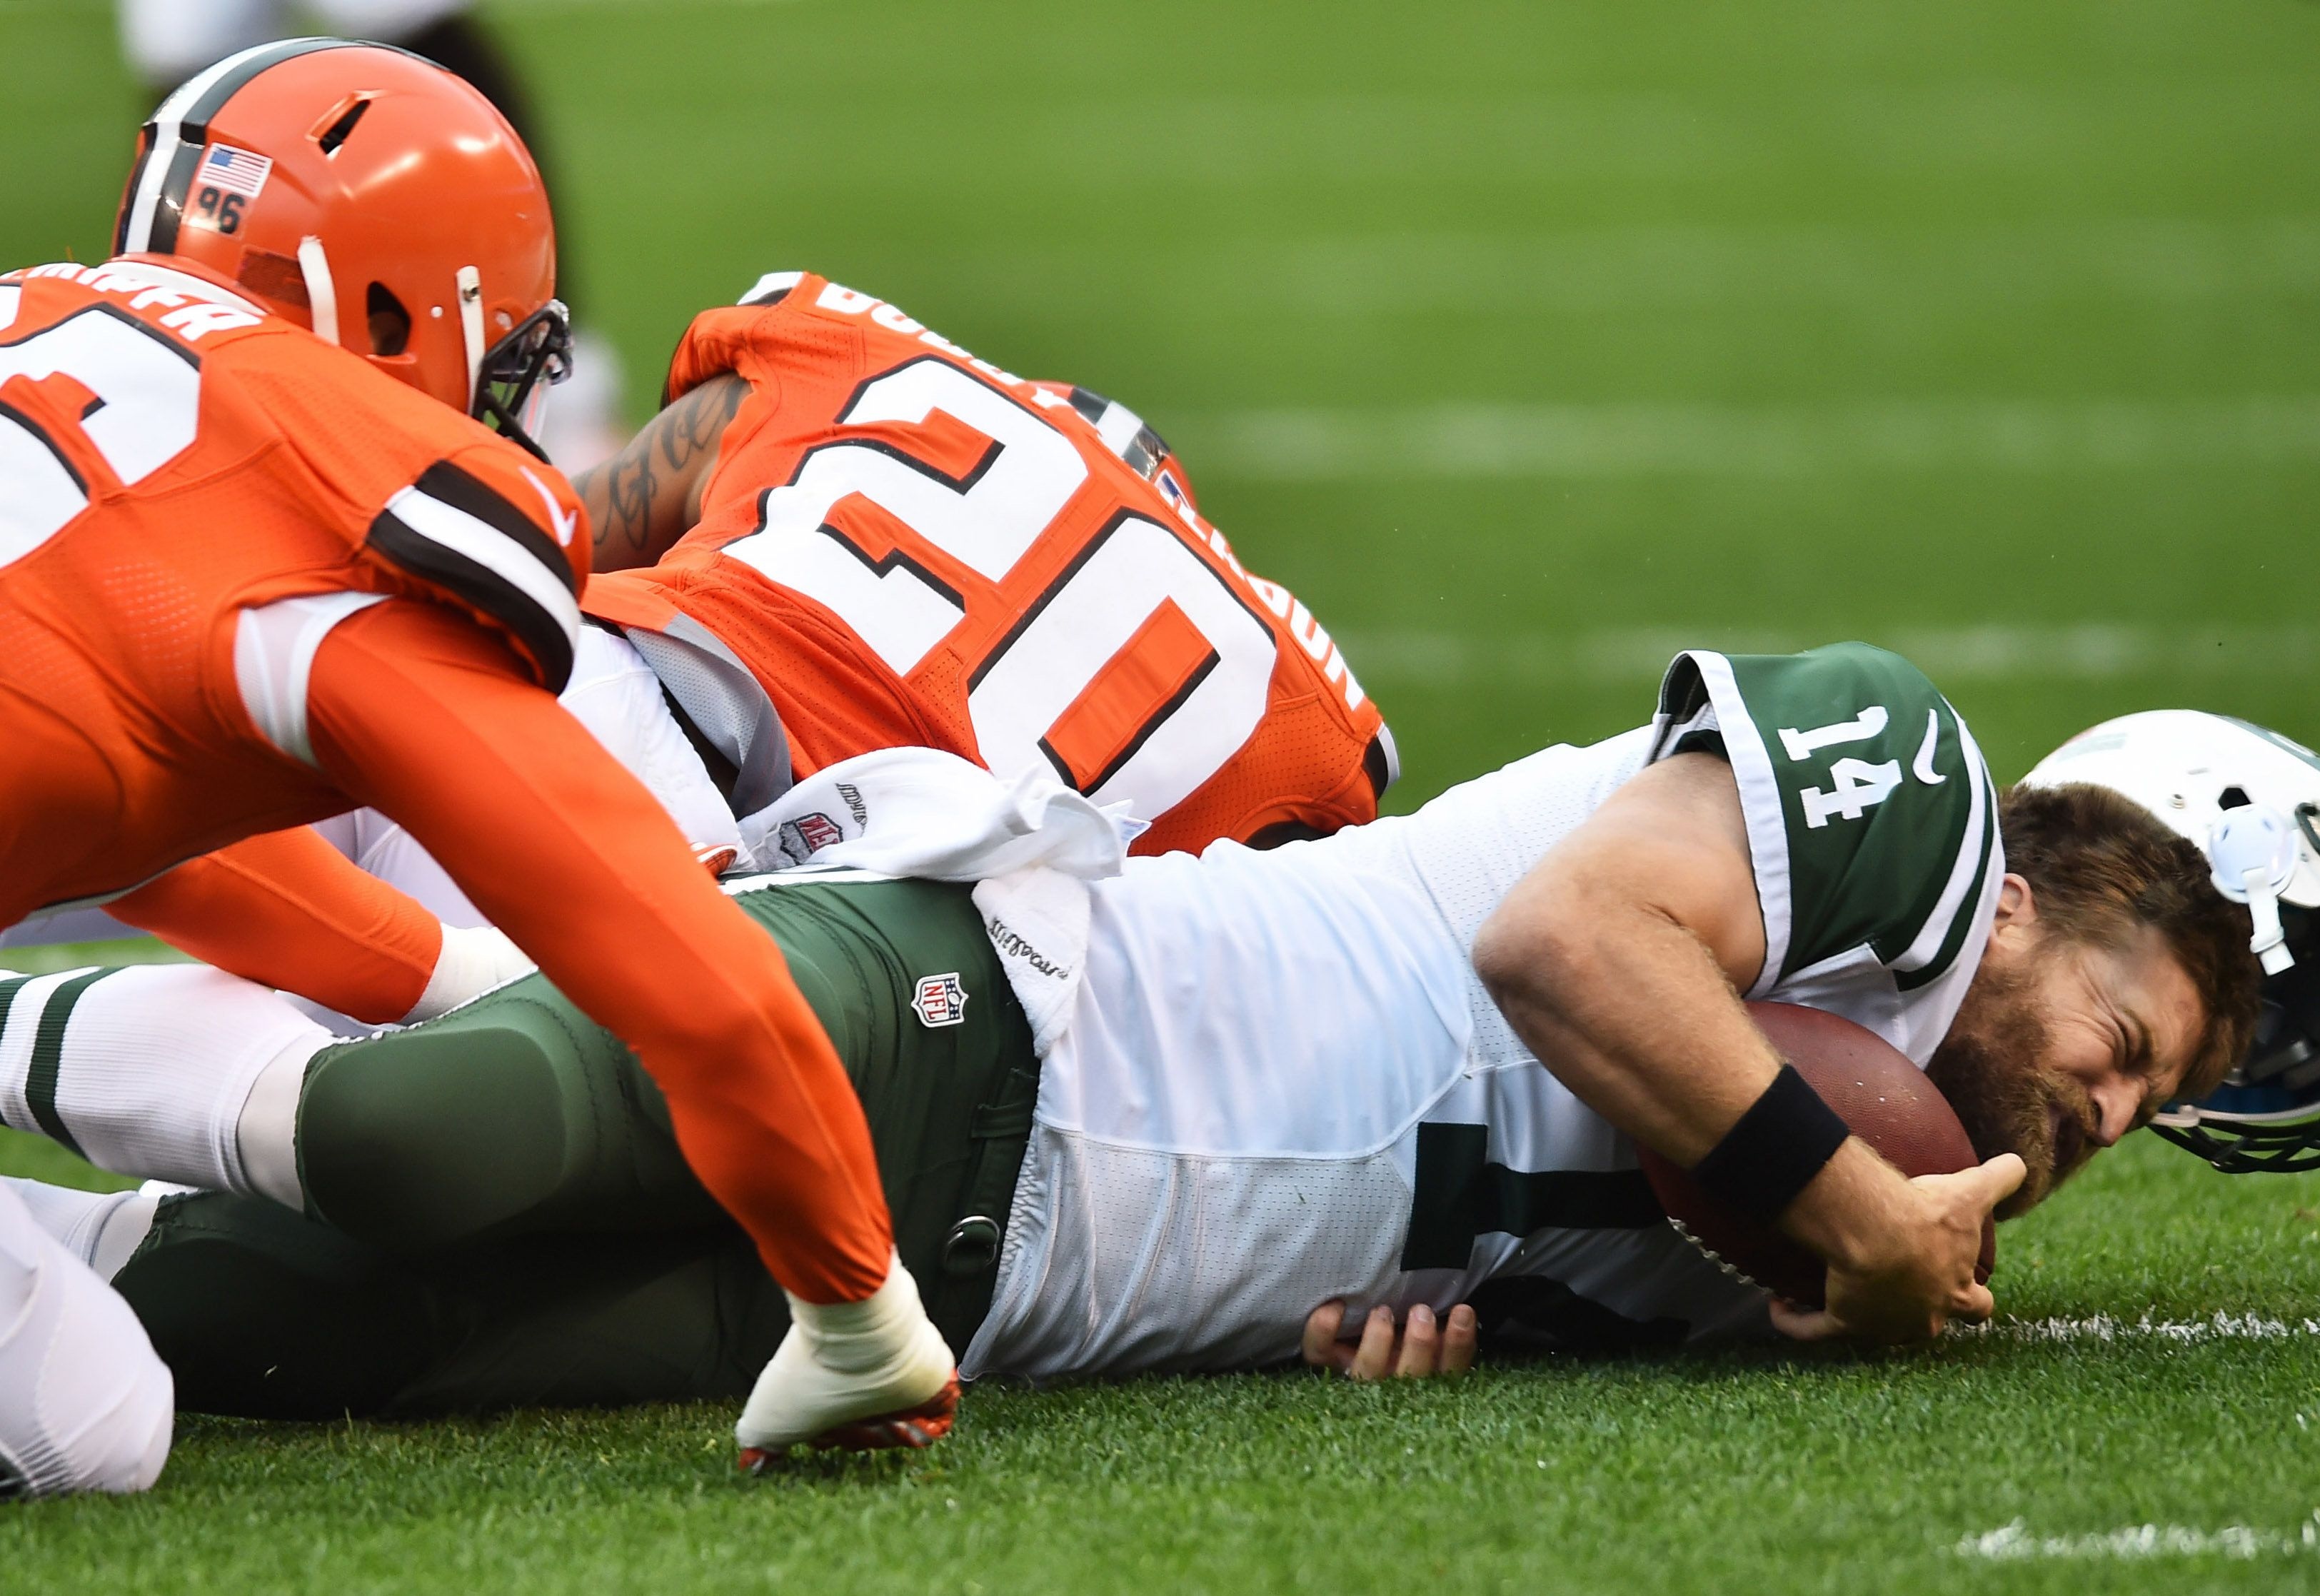 Oct 30, 2016; Cleveland, OH, USA; New York Jets quarterback Ryan Fitzpatrick (14) loses his helmet on a hit by Cleveland Browns cornerback Briean Boddy-Calhoun (20) during the first quarter at FirstEnergy Stadium. Mandatory Credit: Ken Blaze-USA TODAY Sports